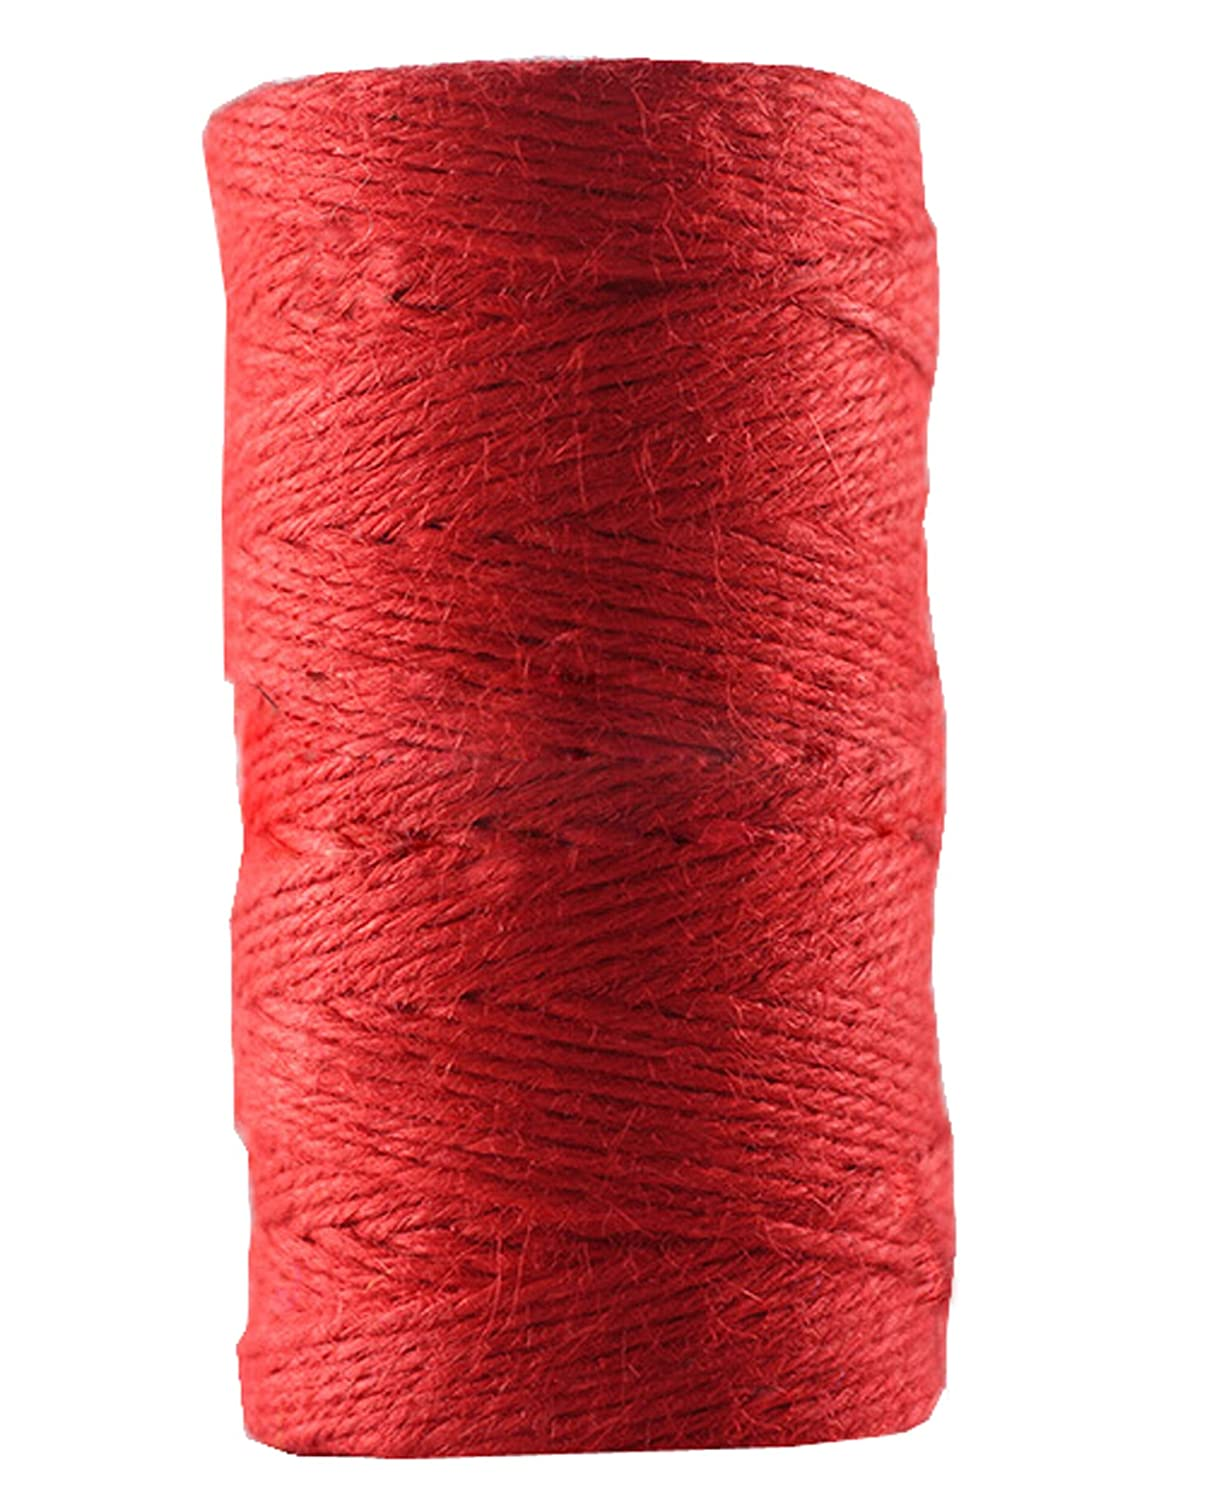 Huachnet Red Jute Twine Best Arts Crafts Twine Industrial Packing Materials Heavy Duty Durable Natural Twine 4 Strands for Gardening Applications-2mm(W)*100 Meters(L) 6539529